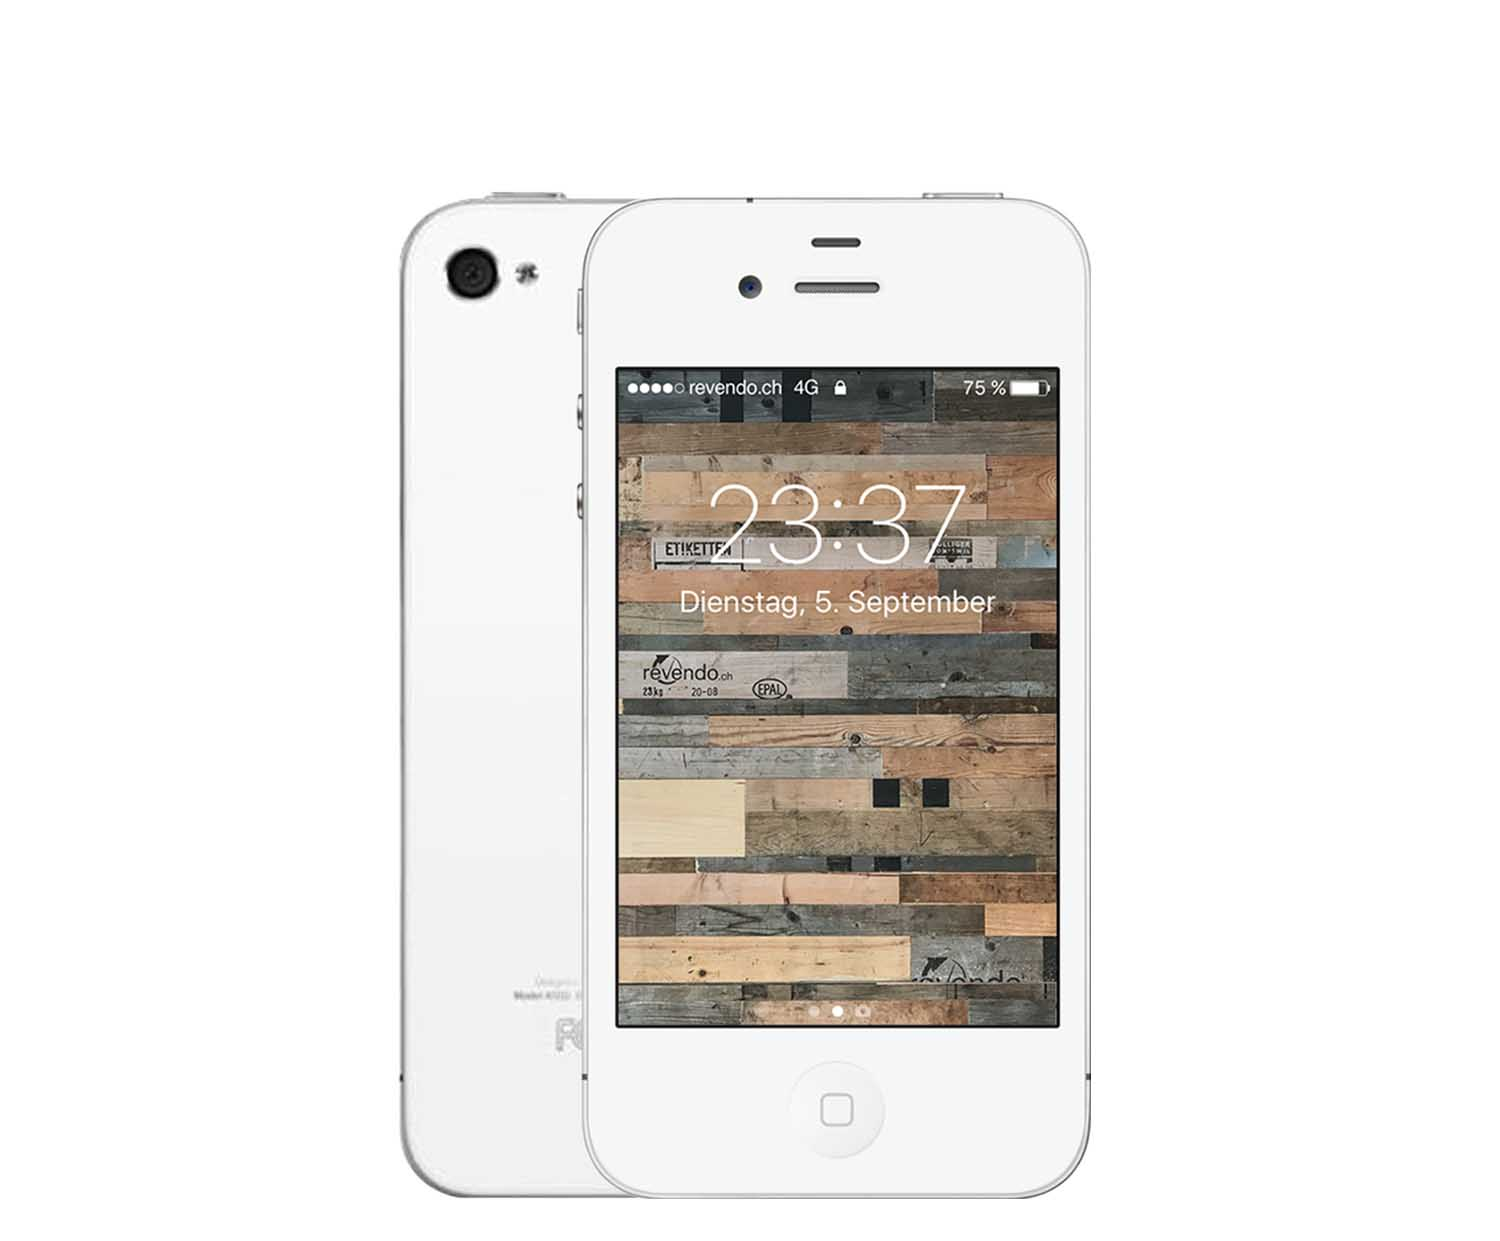 apple iphone 4s 32 gb weiss. Black Bedroom Furniture Sets. Home Design Ideas